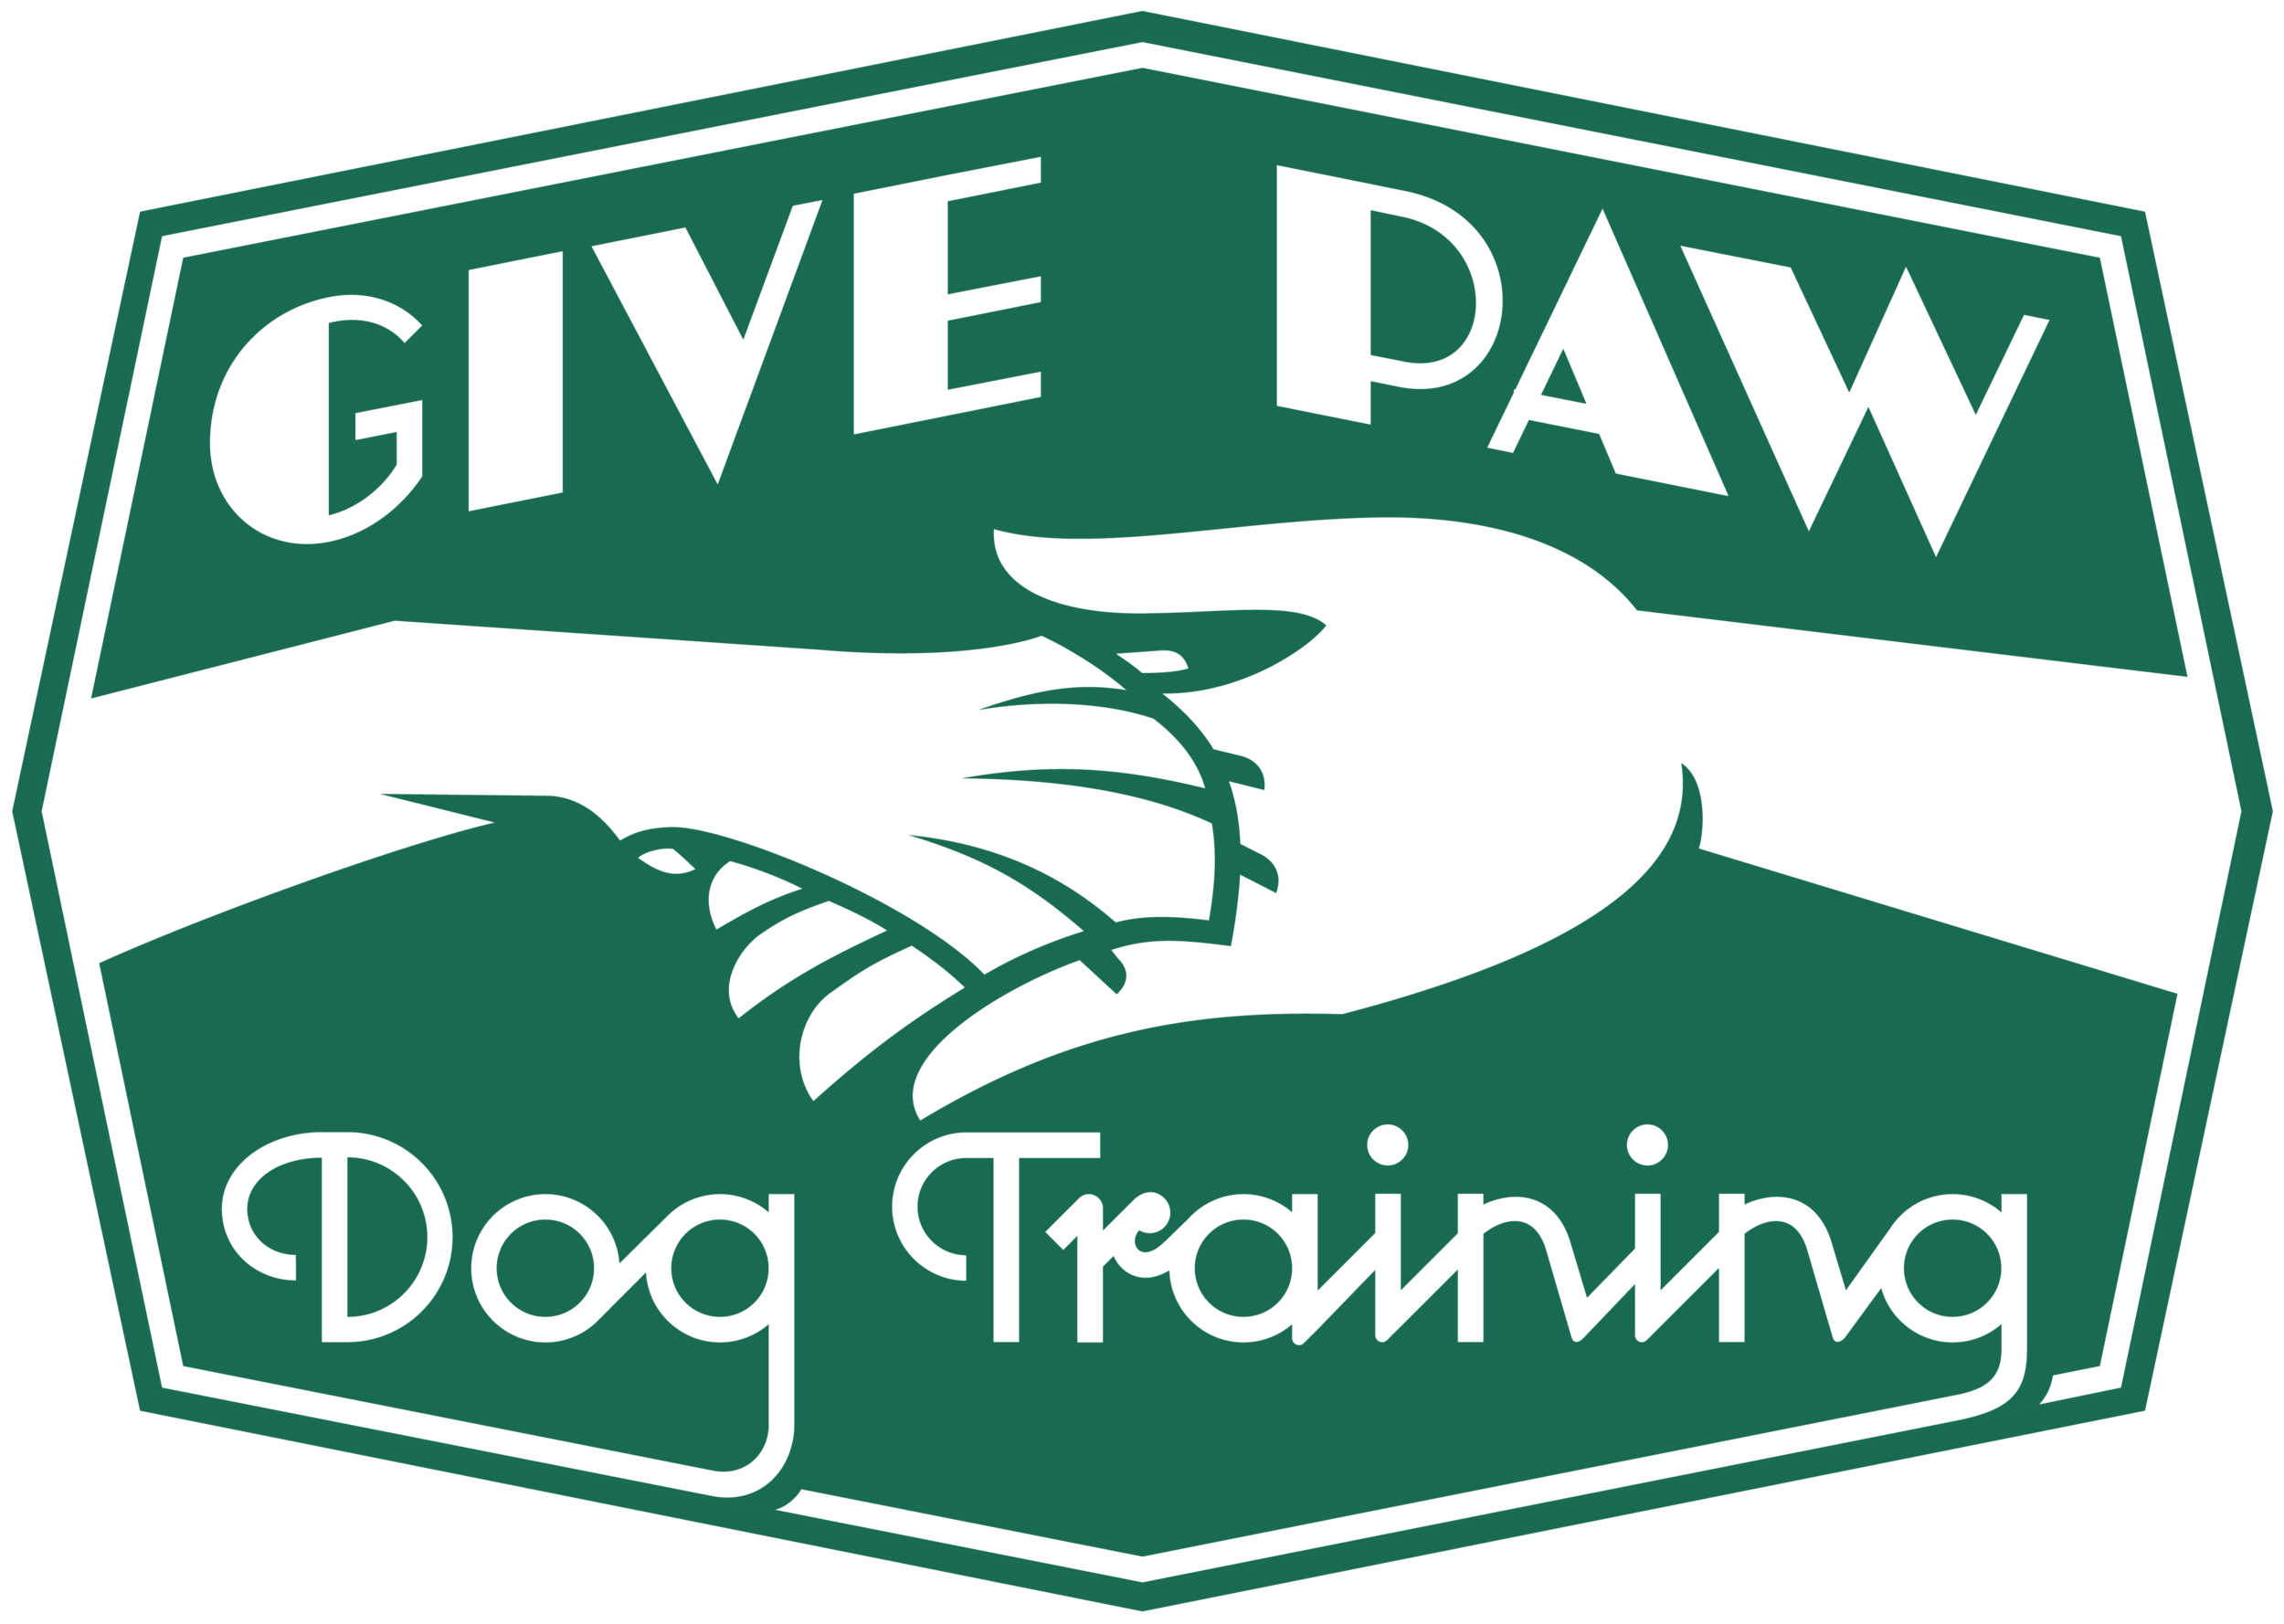 Give paw logo master-01 (2).png